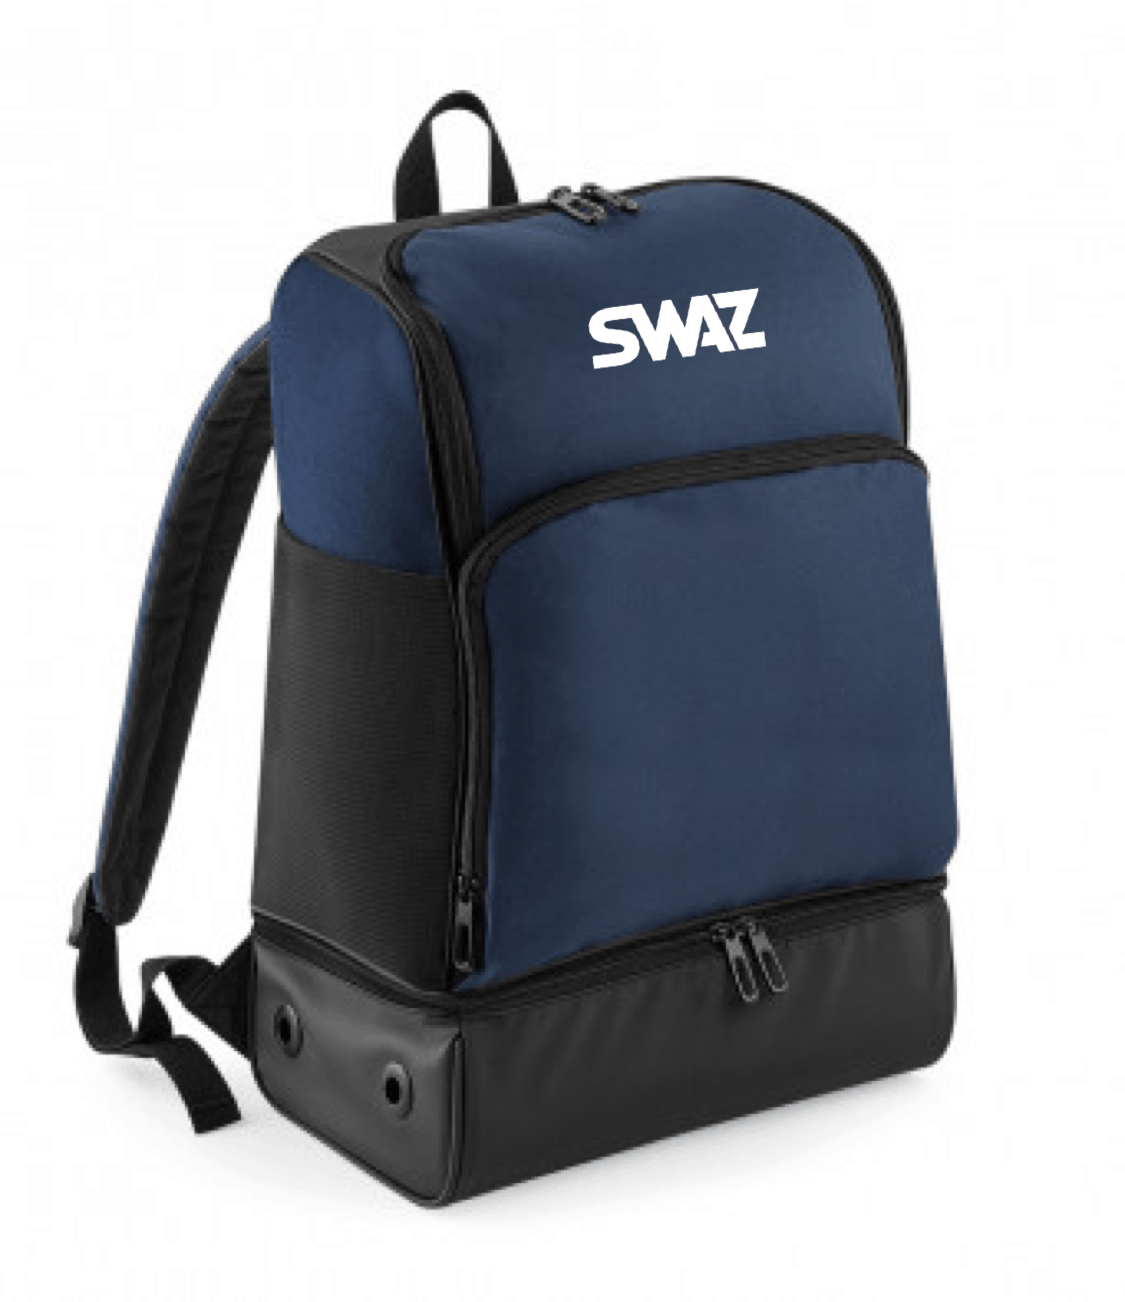 SWAZ Football Rucksack   Available in 3 colours   Customisable with crest